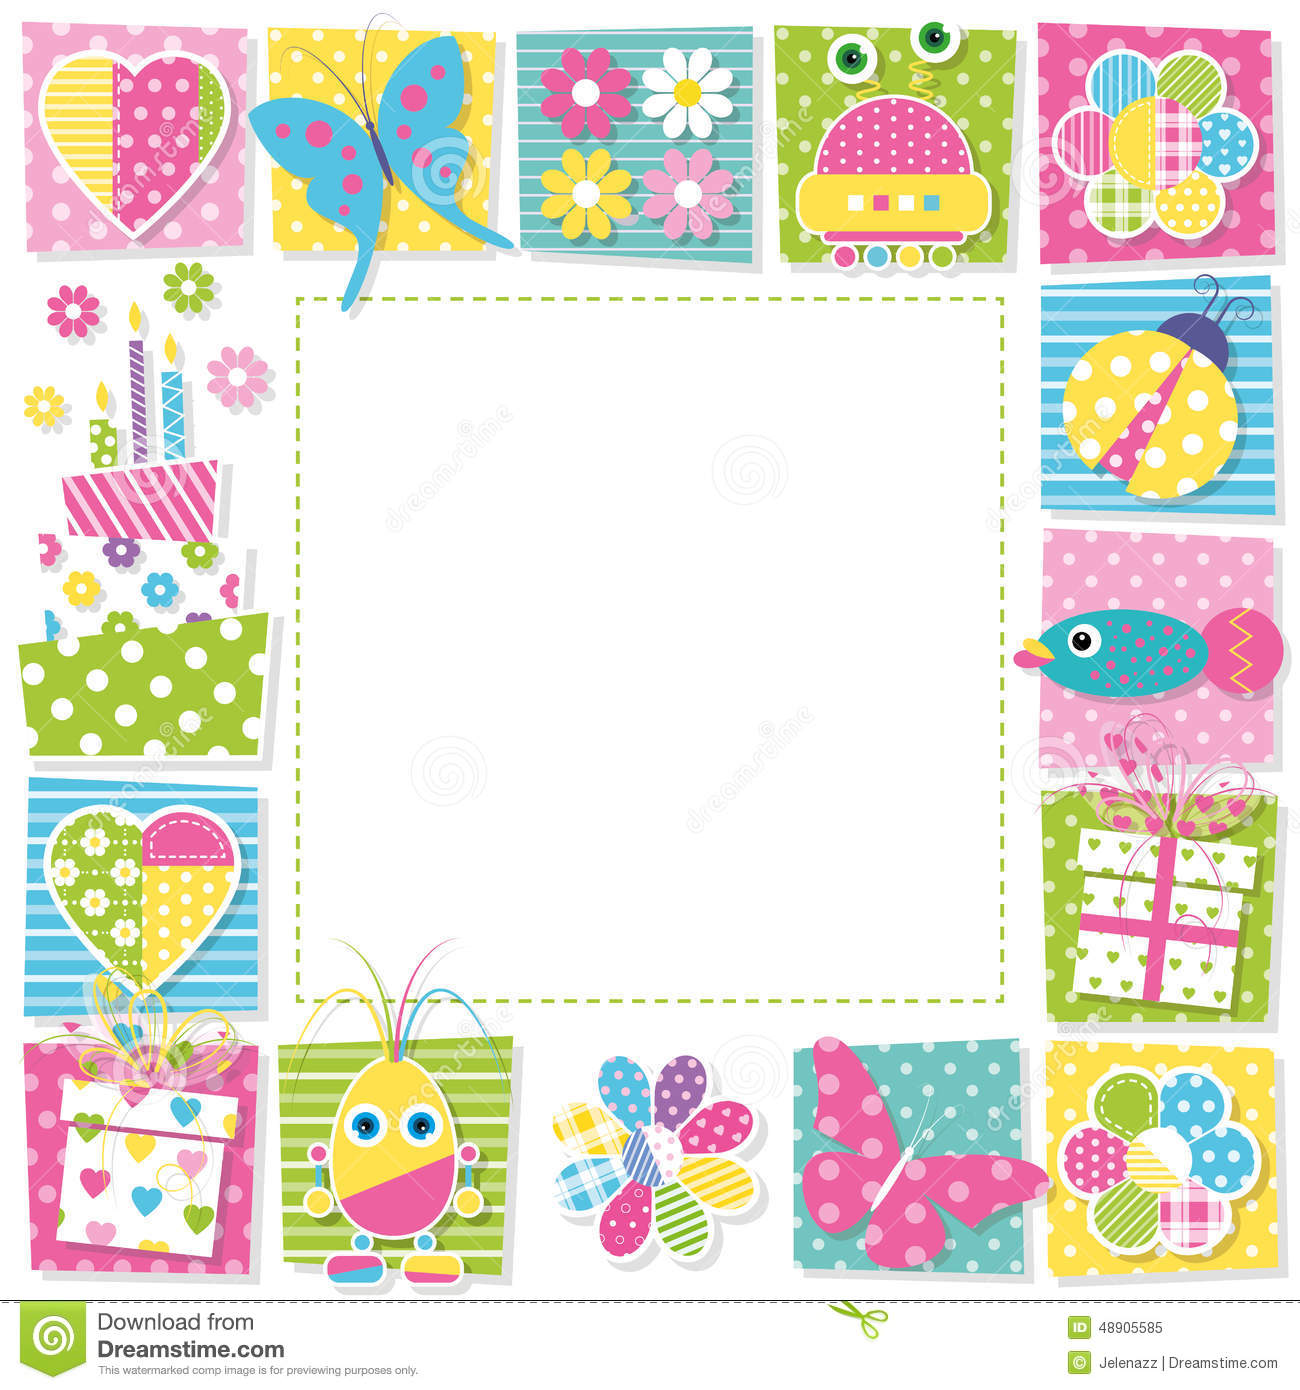 happy birthday borders for pictures ; cute-happy-birthday-border-illustration-butterflies-hearts-flowers-ladybug-robots-presents-cake-fish-colorful-square-48905585